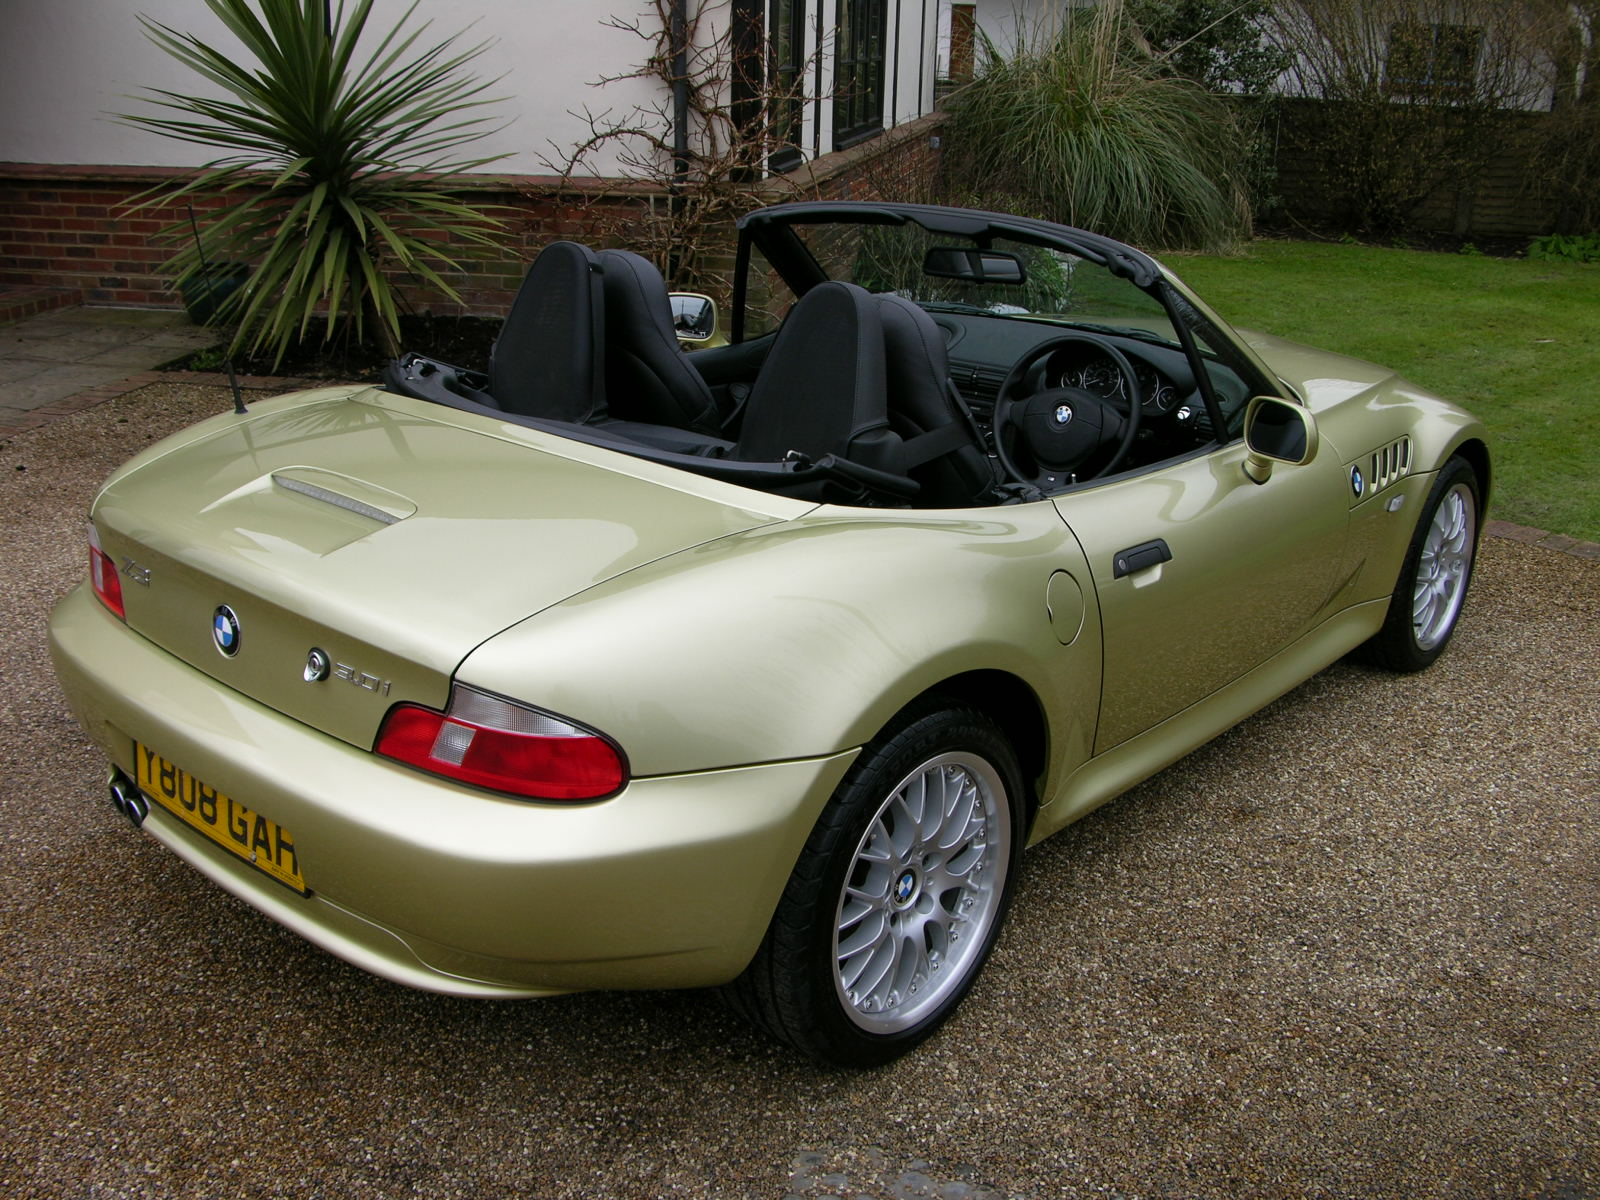 file bmw z3 2001 flickr the car spy 5 jpg wikimedia commons. Black Bedroom Furniture Sets. Home Design Ideas